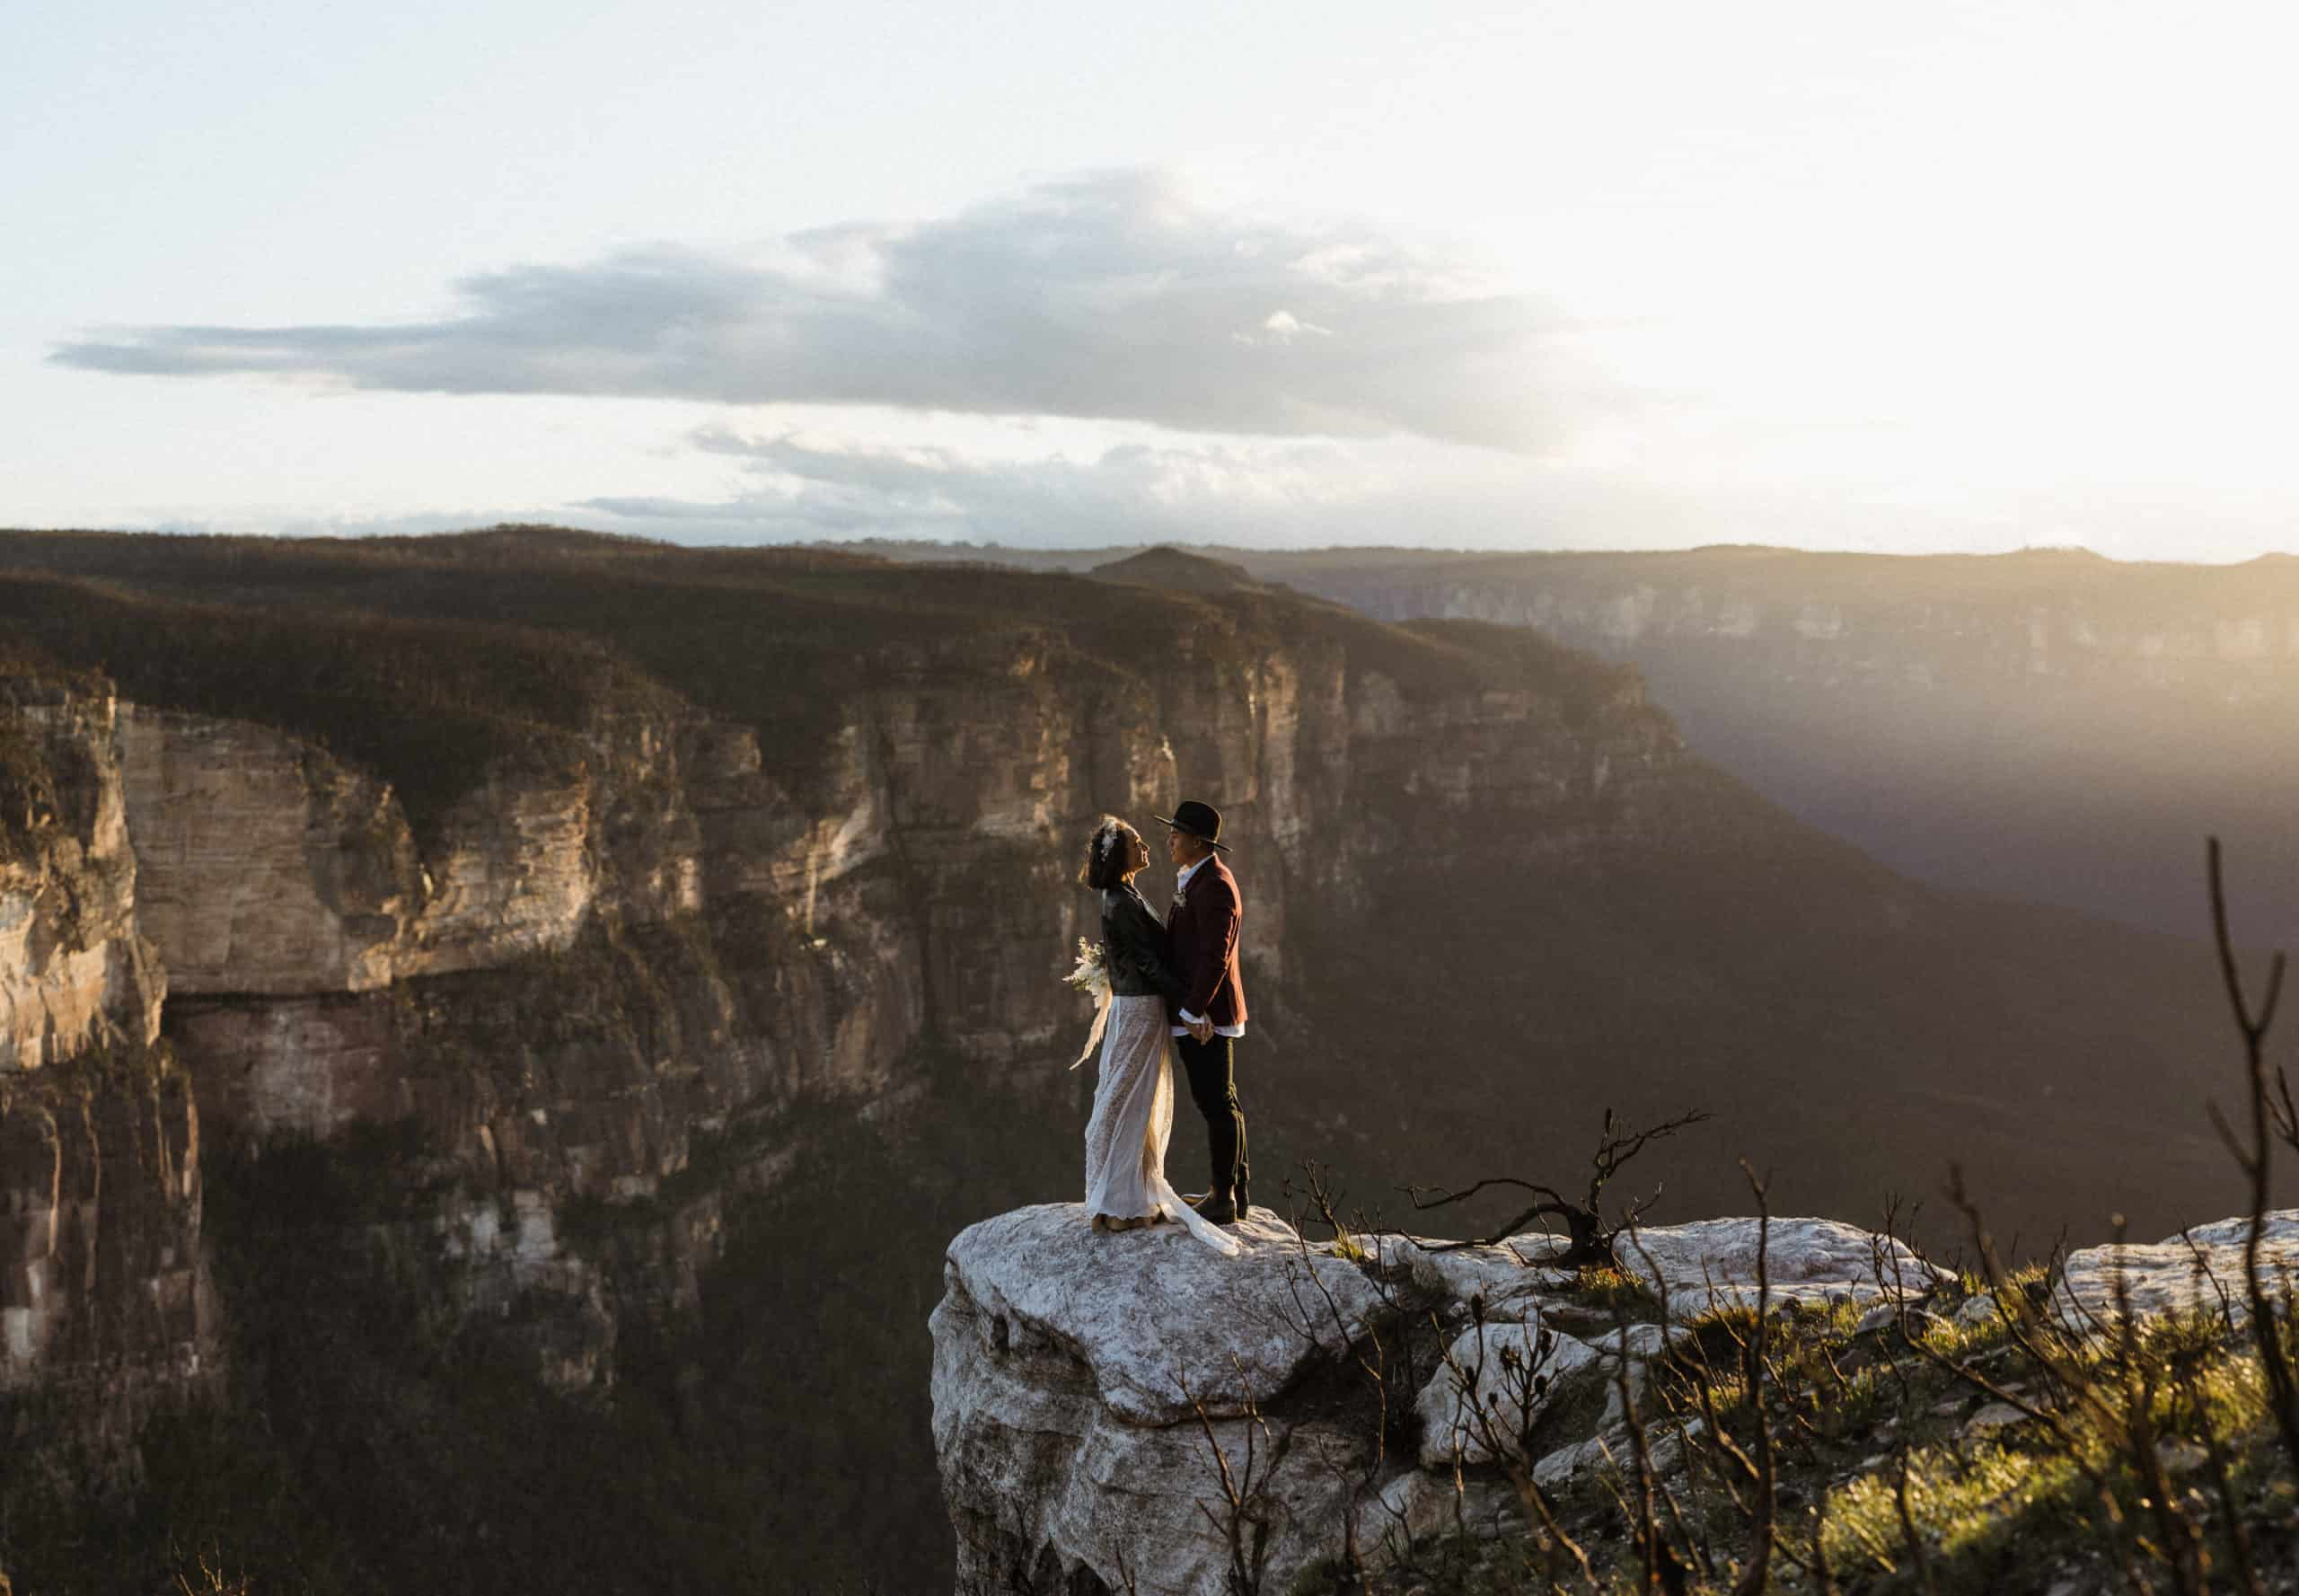 bride and groom sunset portraits on edge of the cliff in the mountains in NSW after elopement